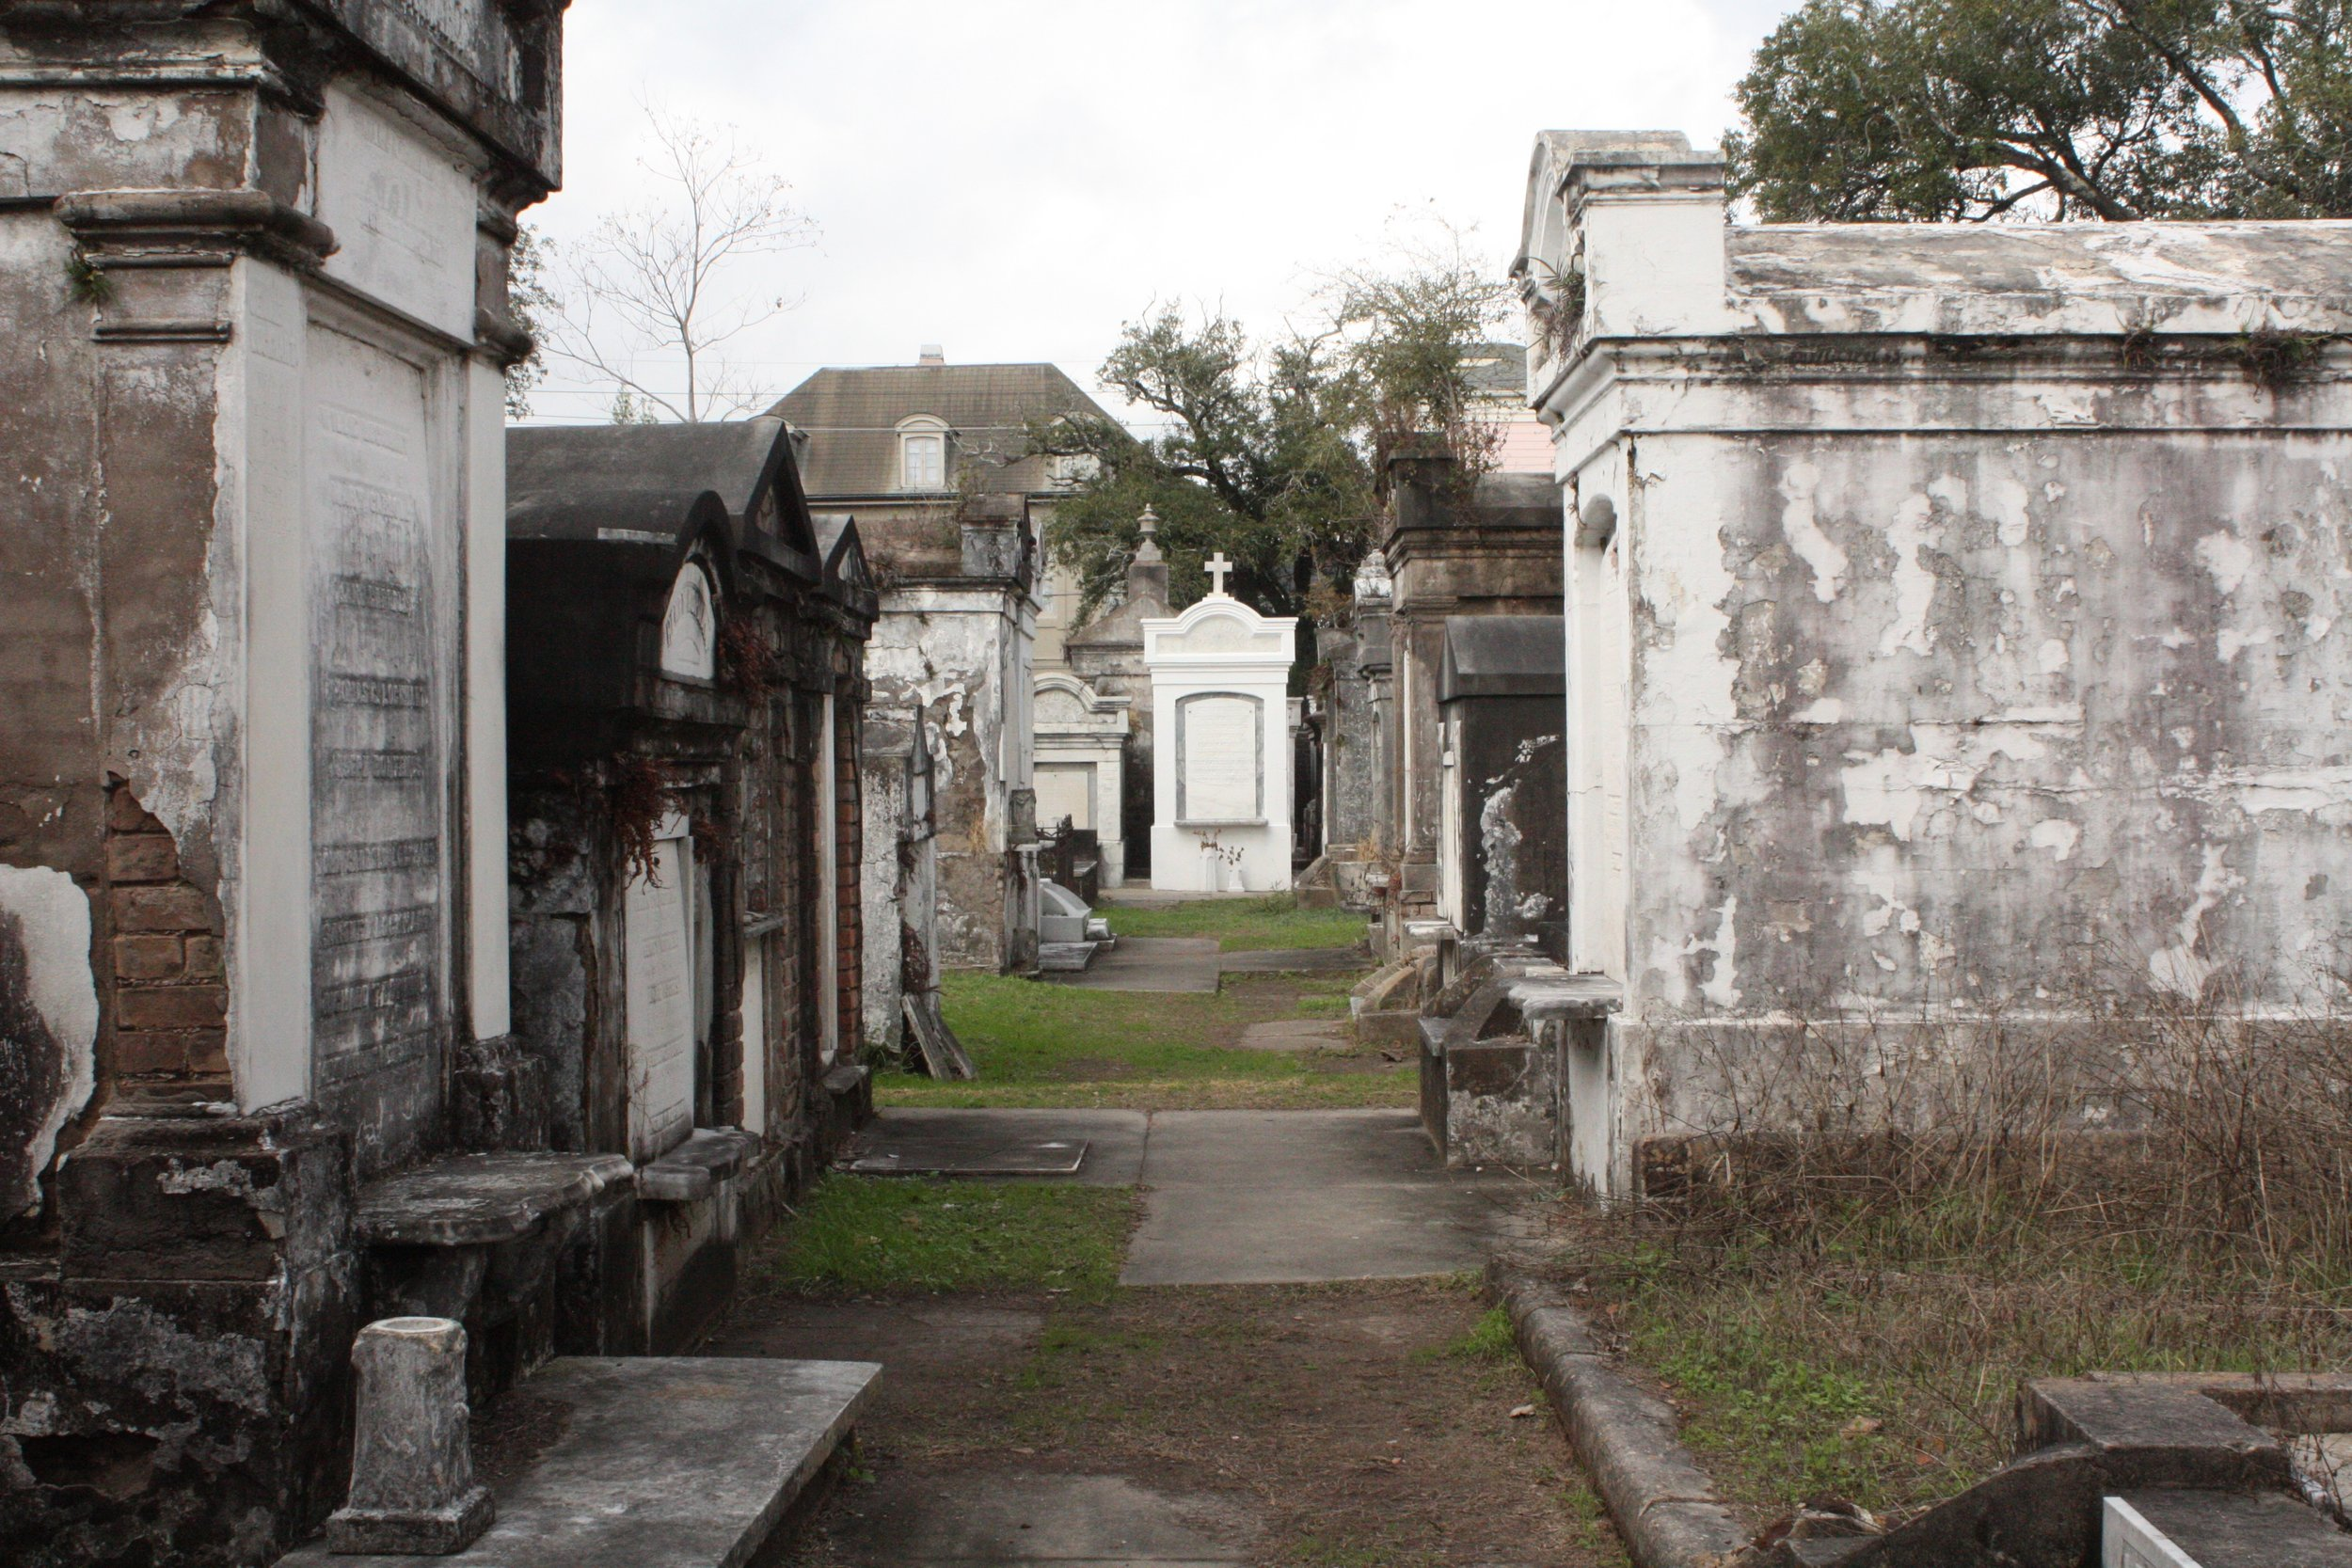 Lafayette Cemetery No. 1, New Orleans: December 2016